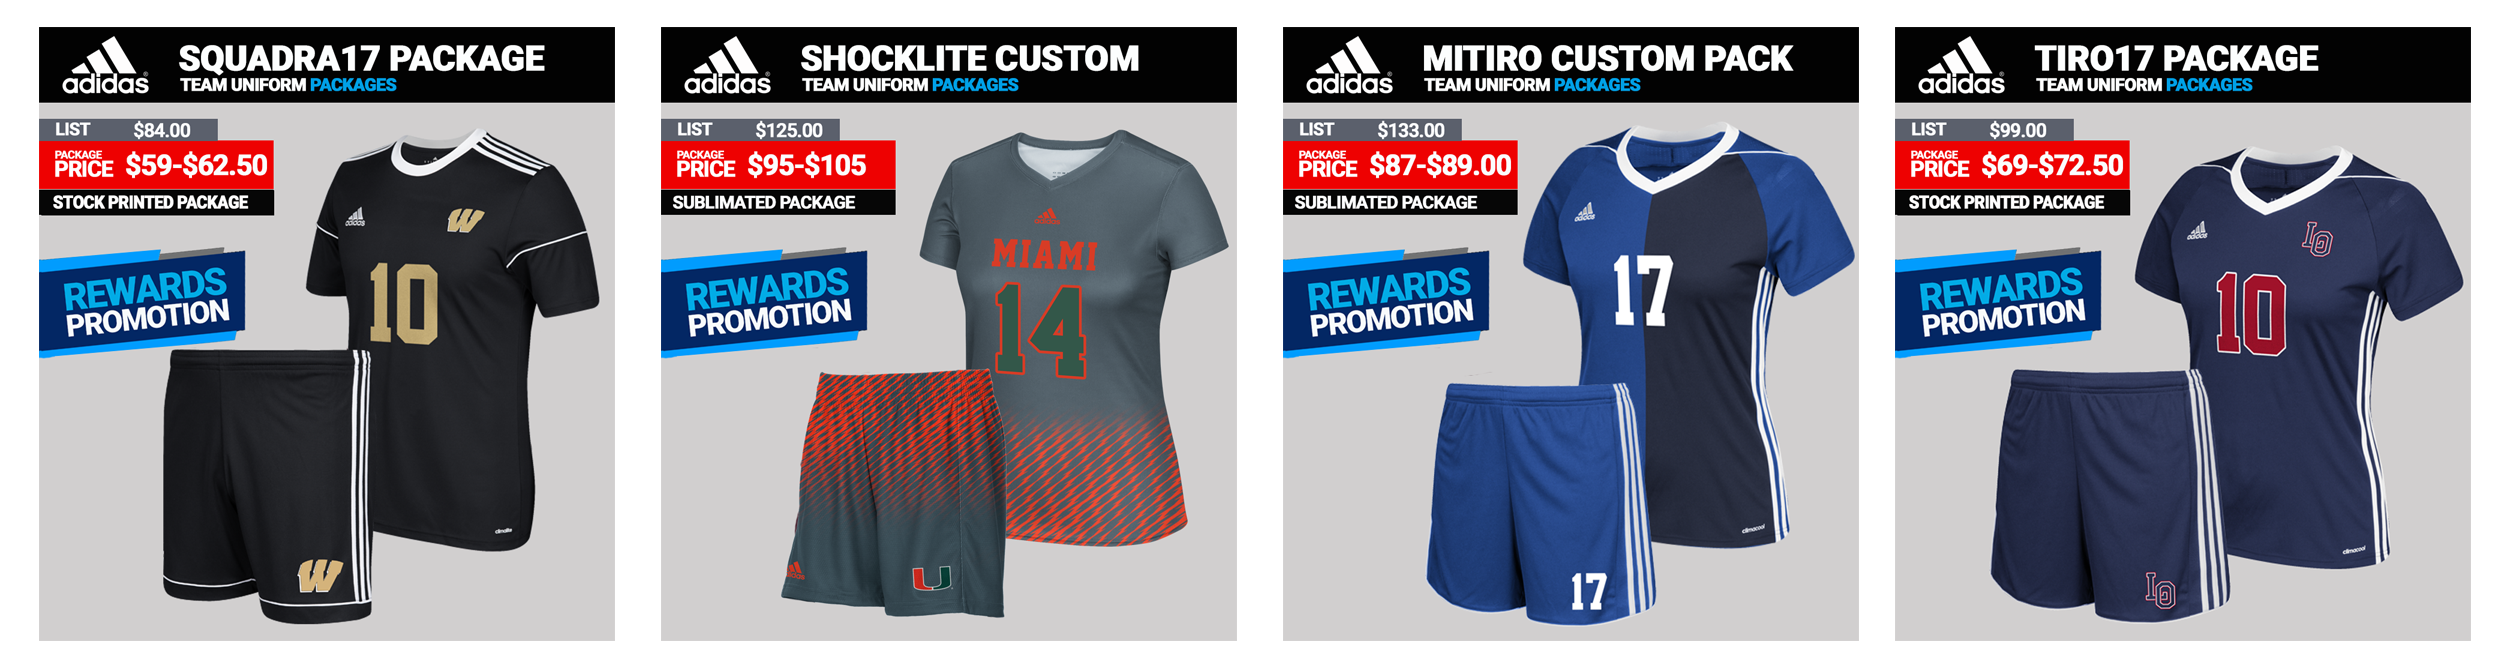 Adidas Custom Soccer Uniforms